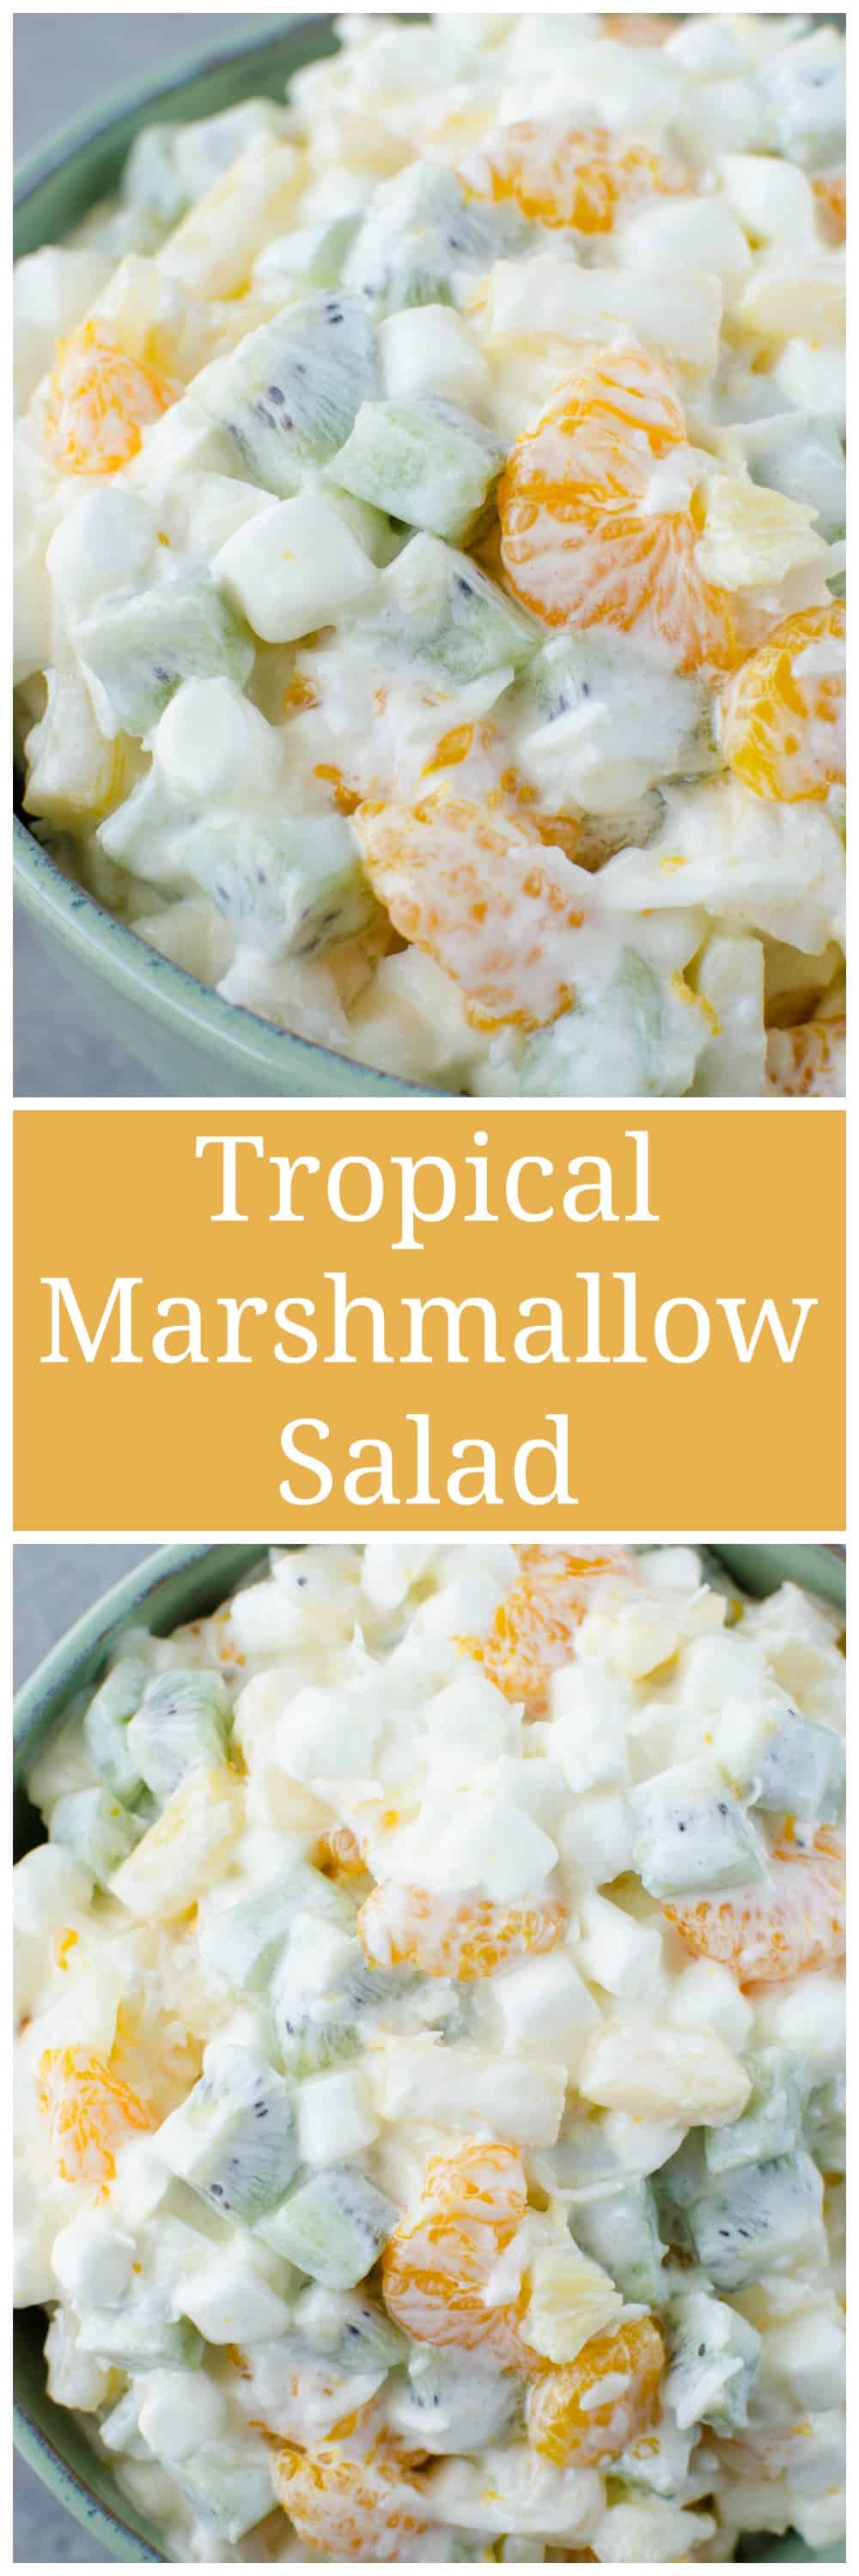 Tropical Marshmallow Fruit Salad - mandarin oranges, pineapple, kiwi, coconut, and marshmallow in a sweet and creamy dressing.